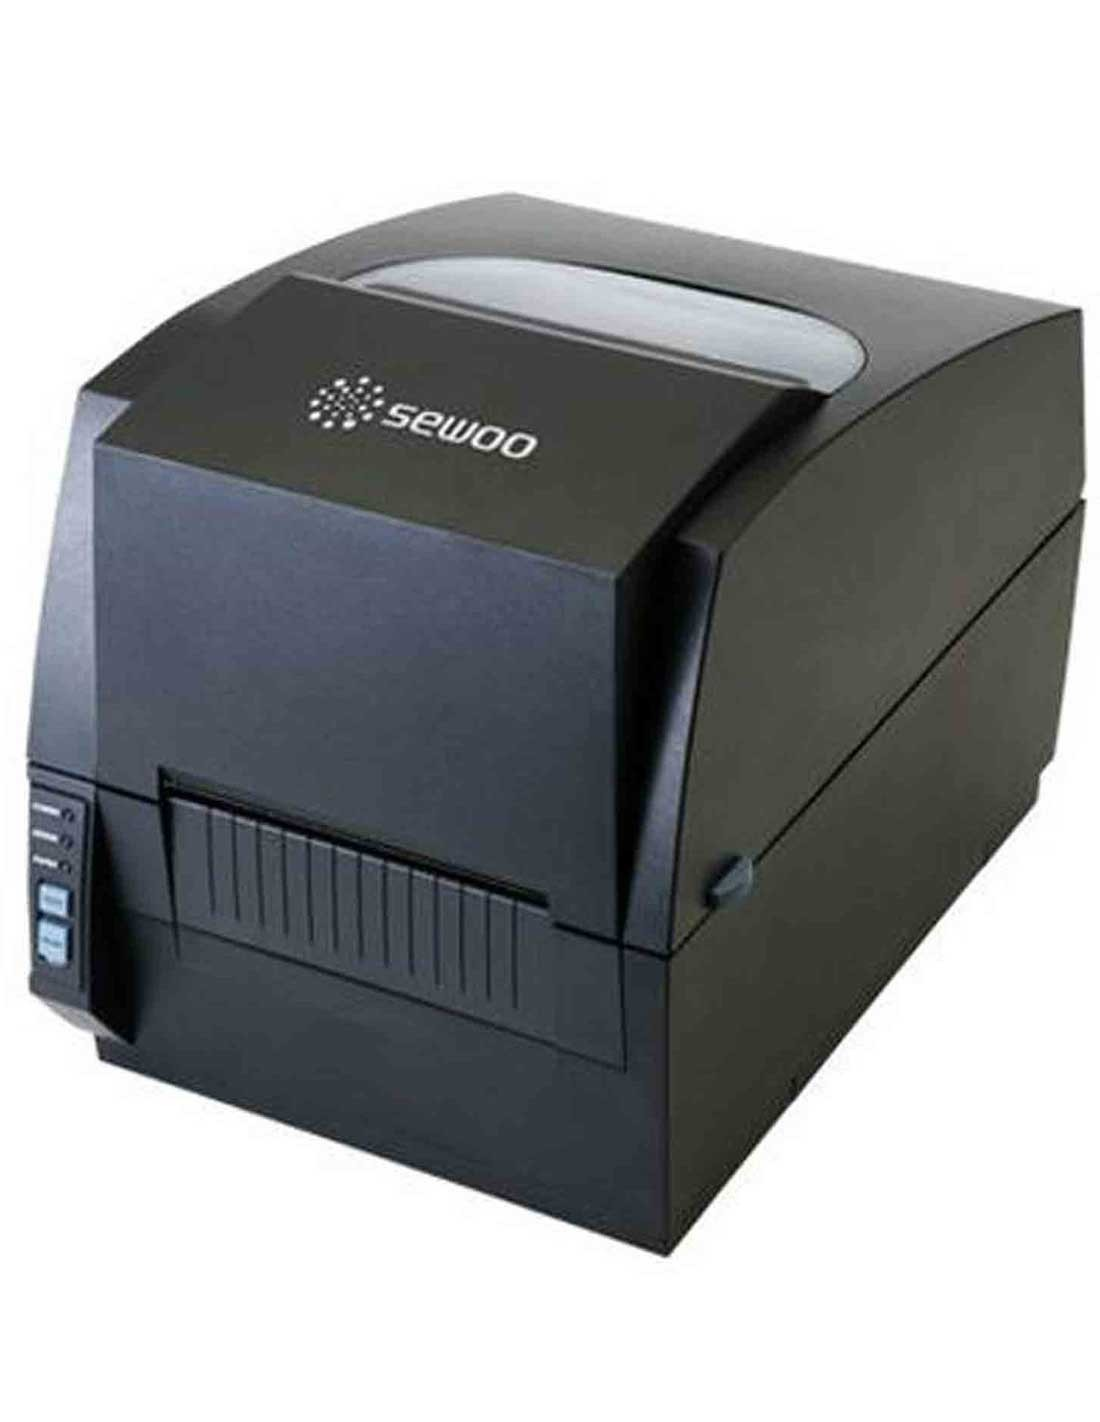 Sewoo LK-B12 Barcode Printer at a Cheap price in Dubai Online Store